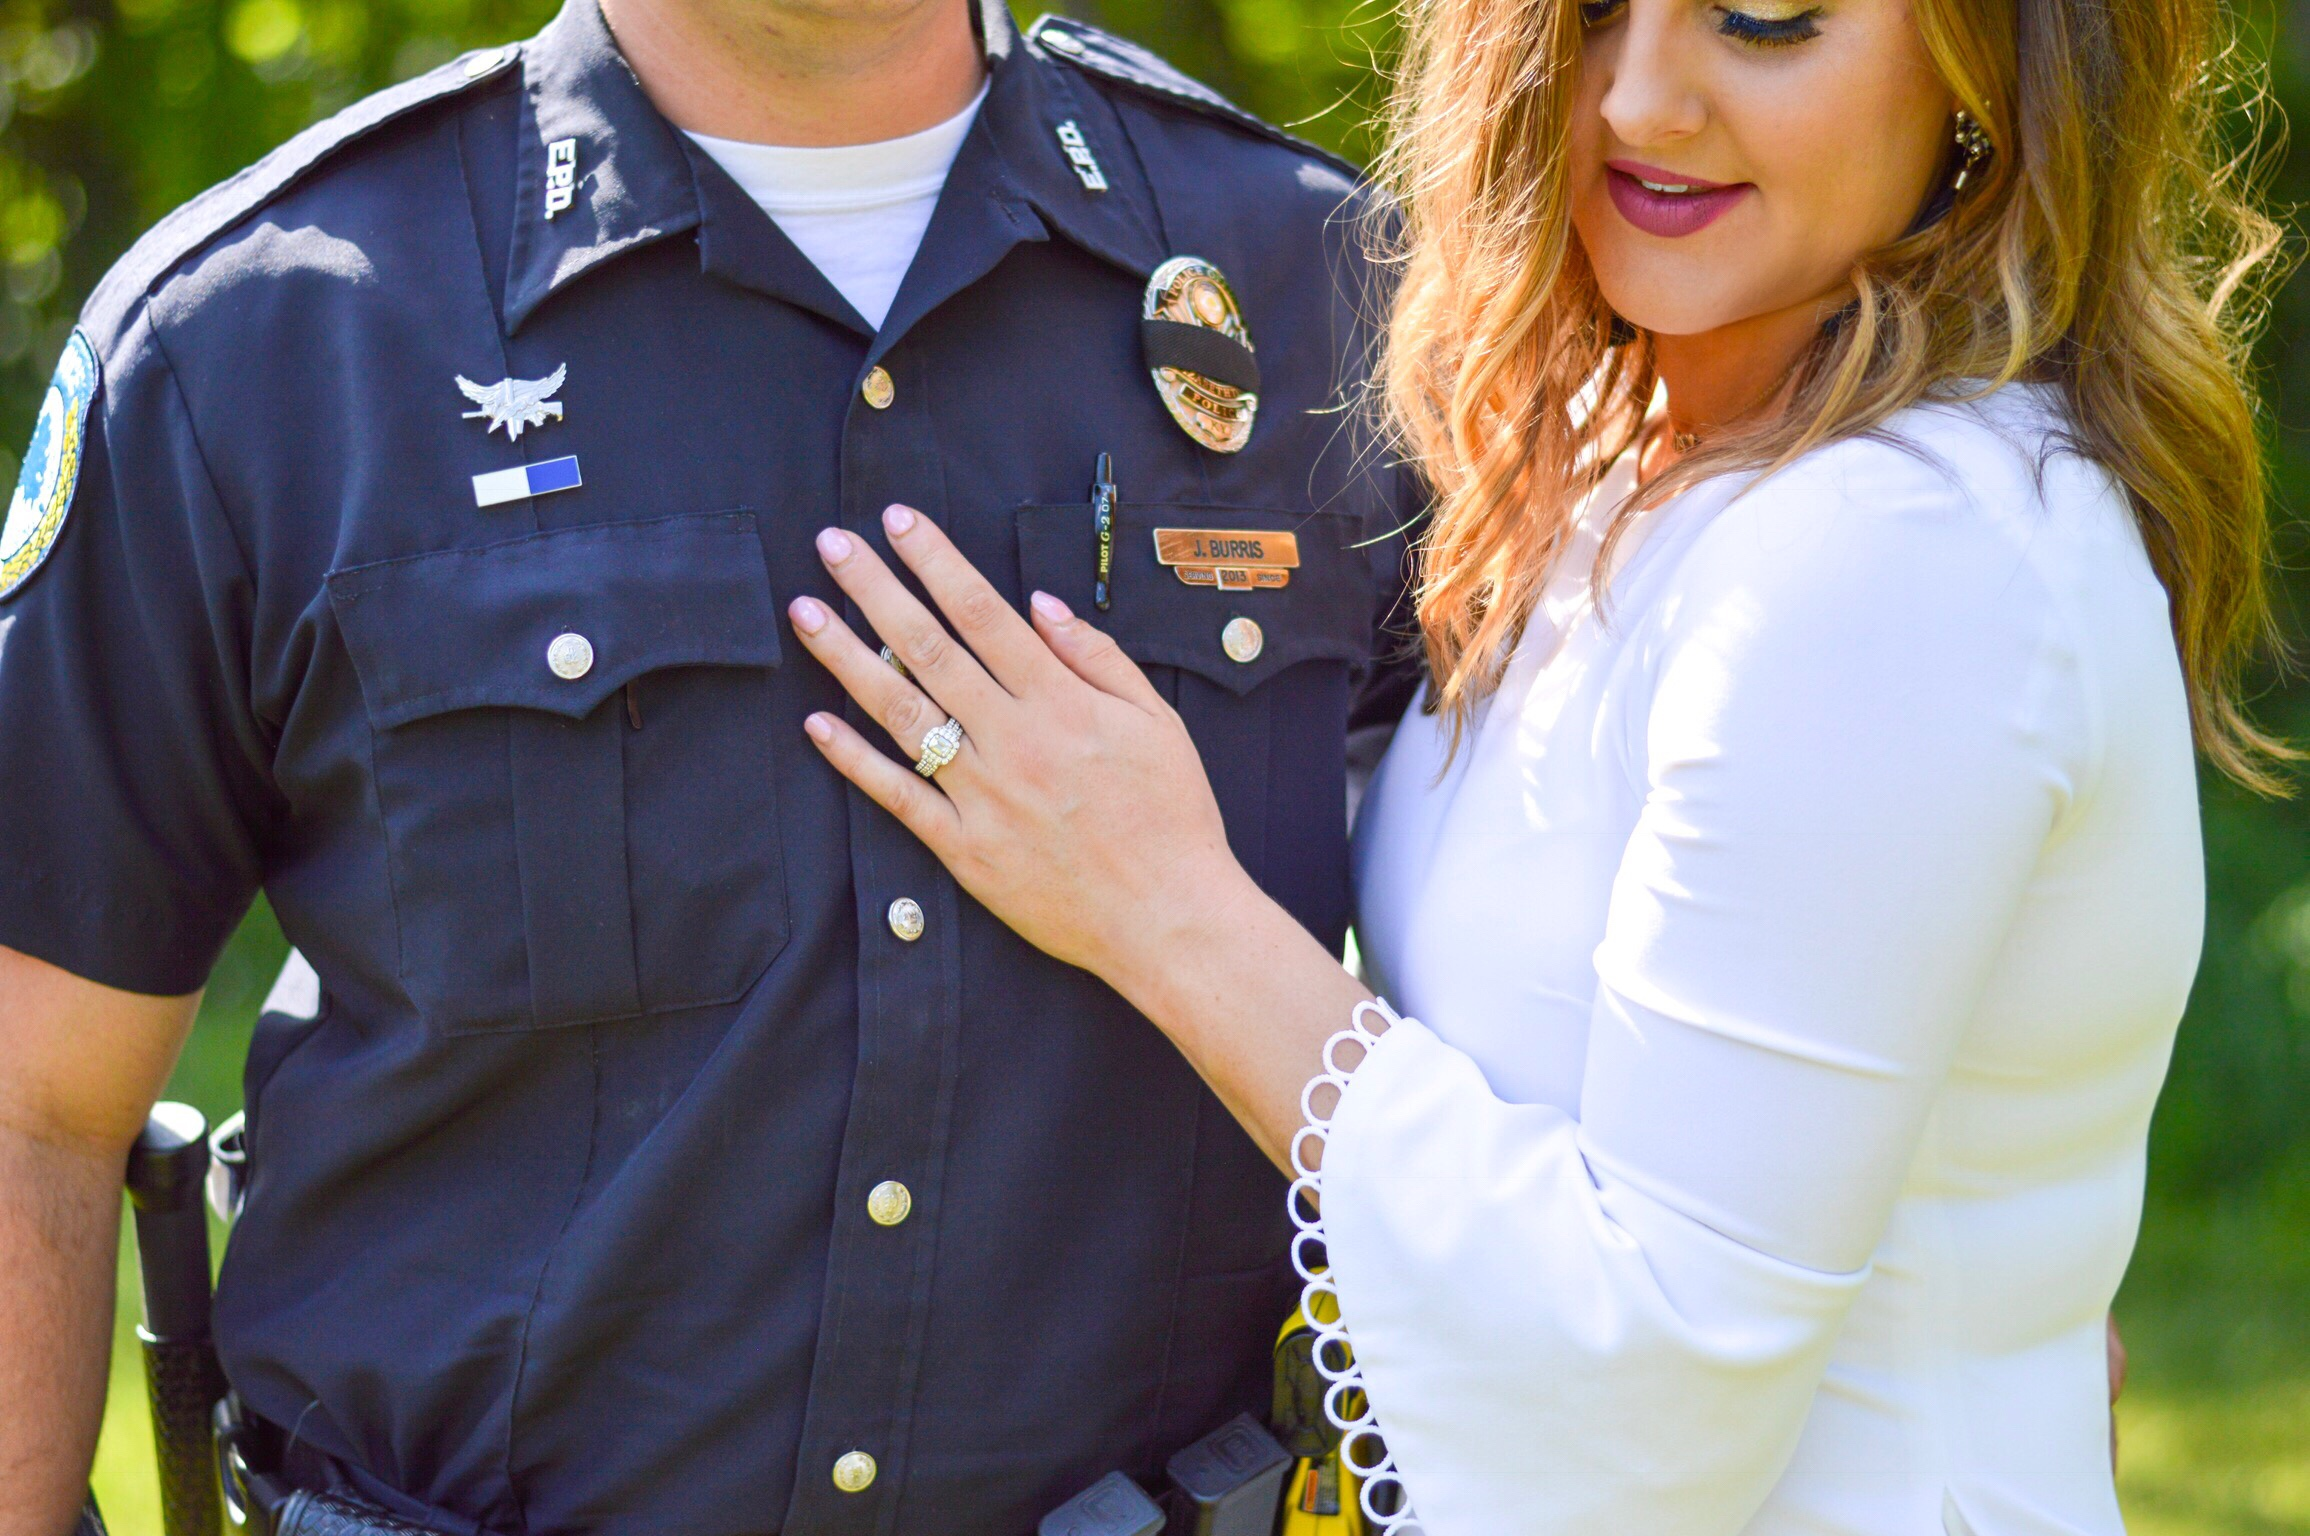 Police Wife Life: 10 Things I Have Learned as a Police Wife